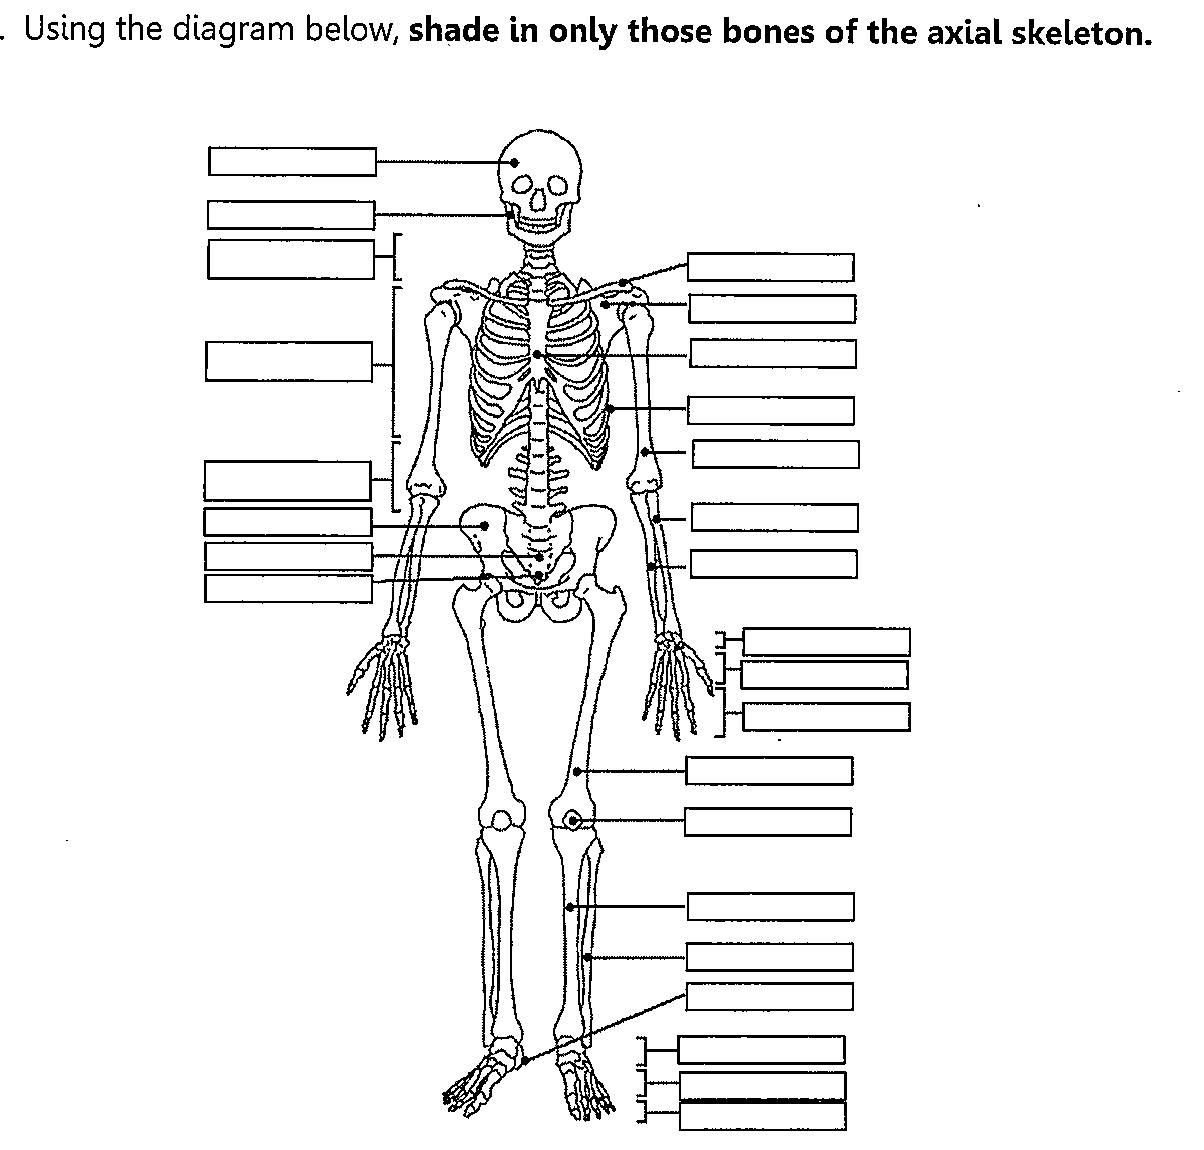 Blank Skeletal System Worksheet Skeletal System Fill In the Blank Worksheets